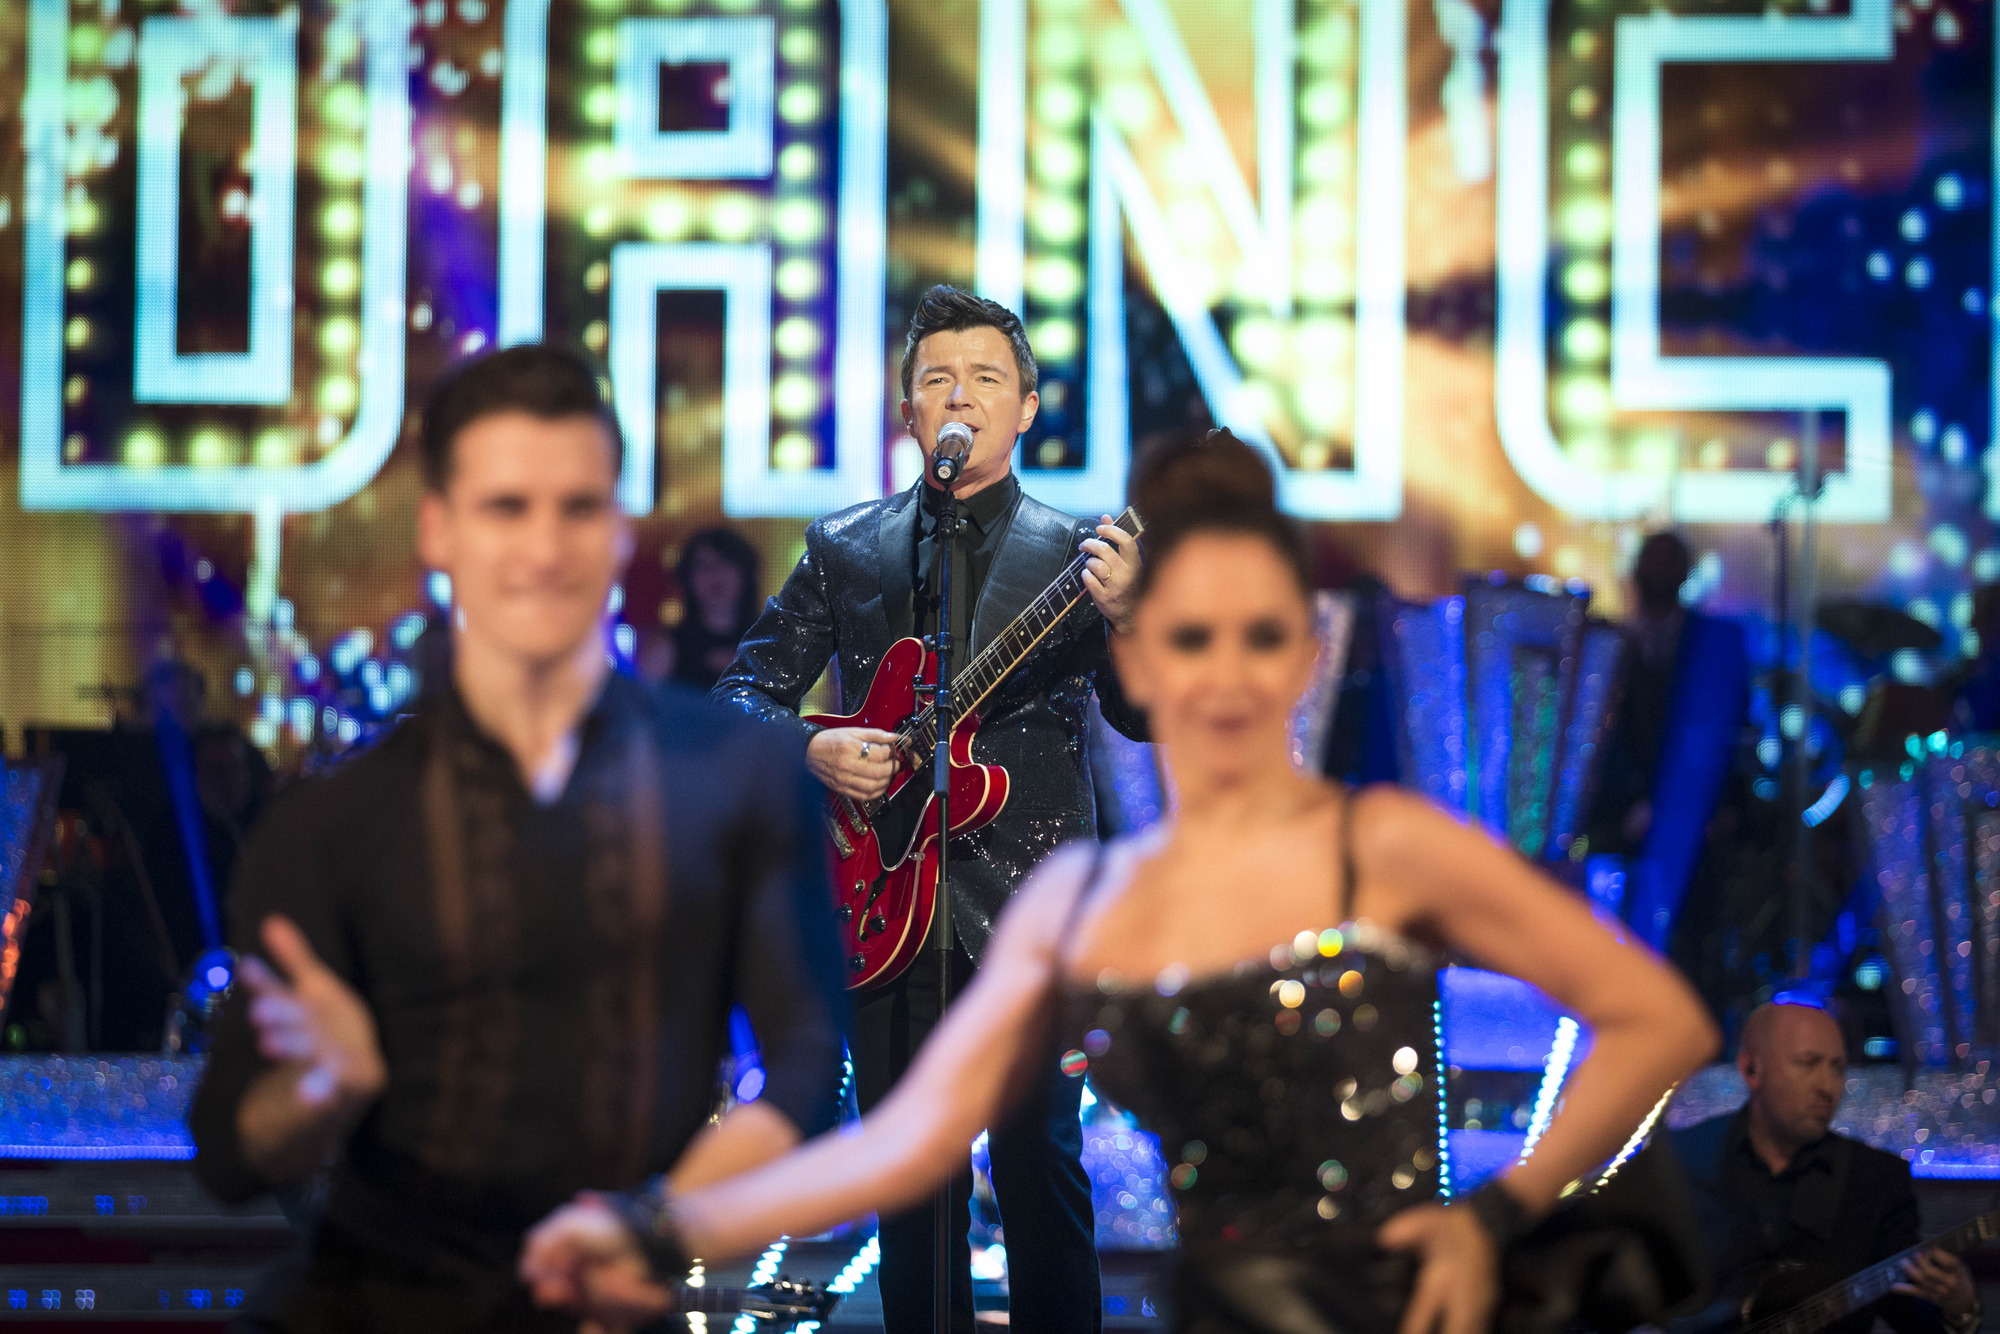 Strictly Come Dancing Pro Dancers, Rick Astley - (C) BBC - Photographer: Guy Levy